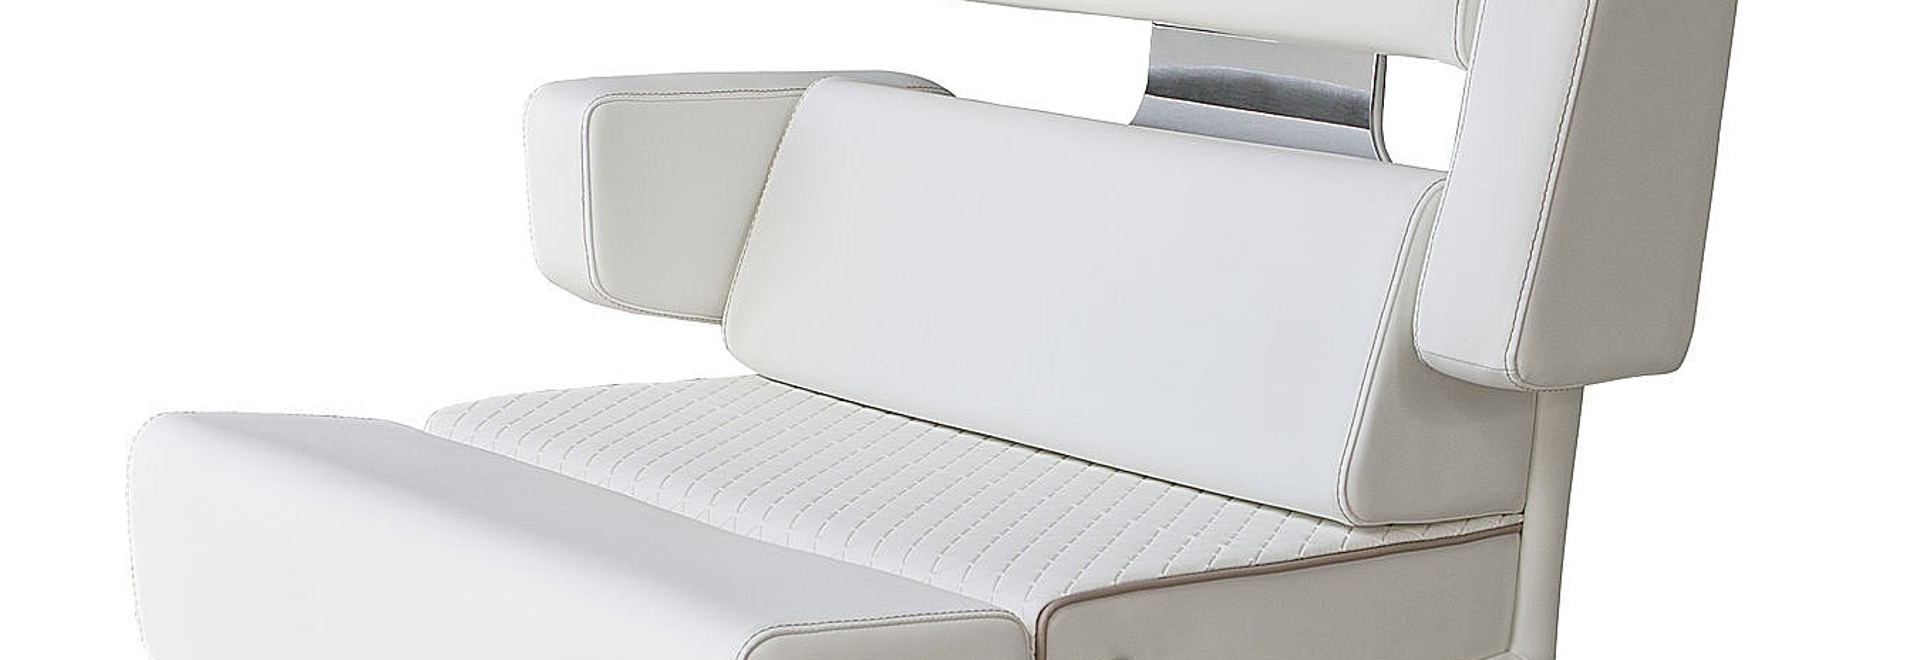 Dragonfly: a minimalistic design onboard for Besenzoni''s new chair